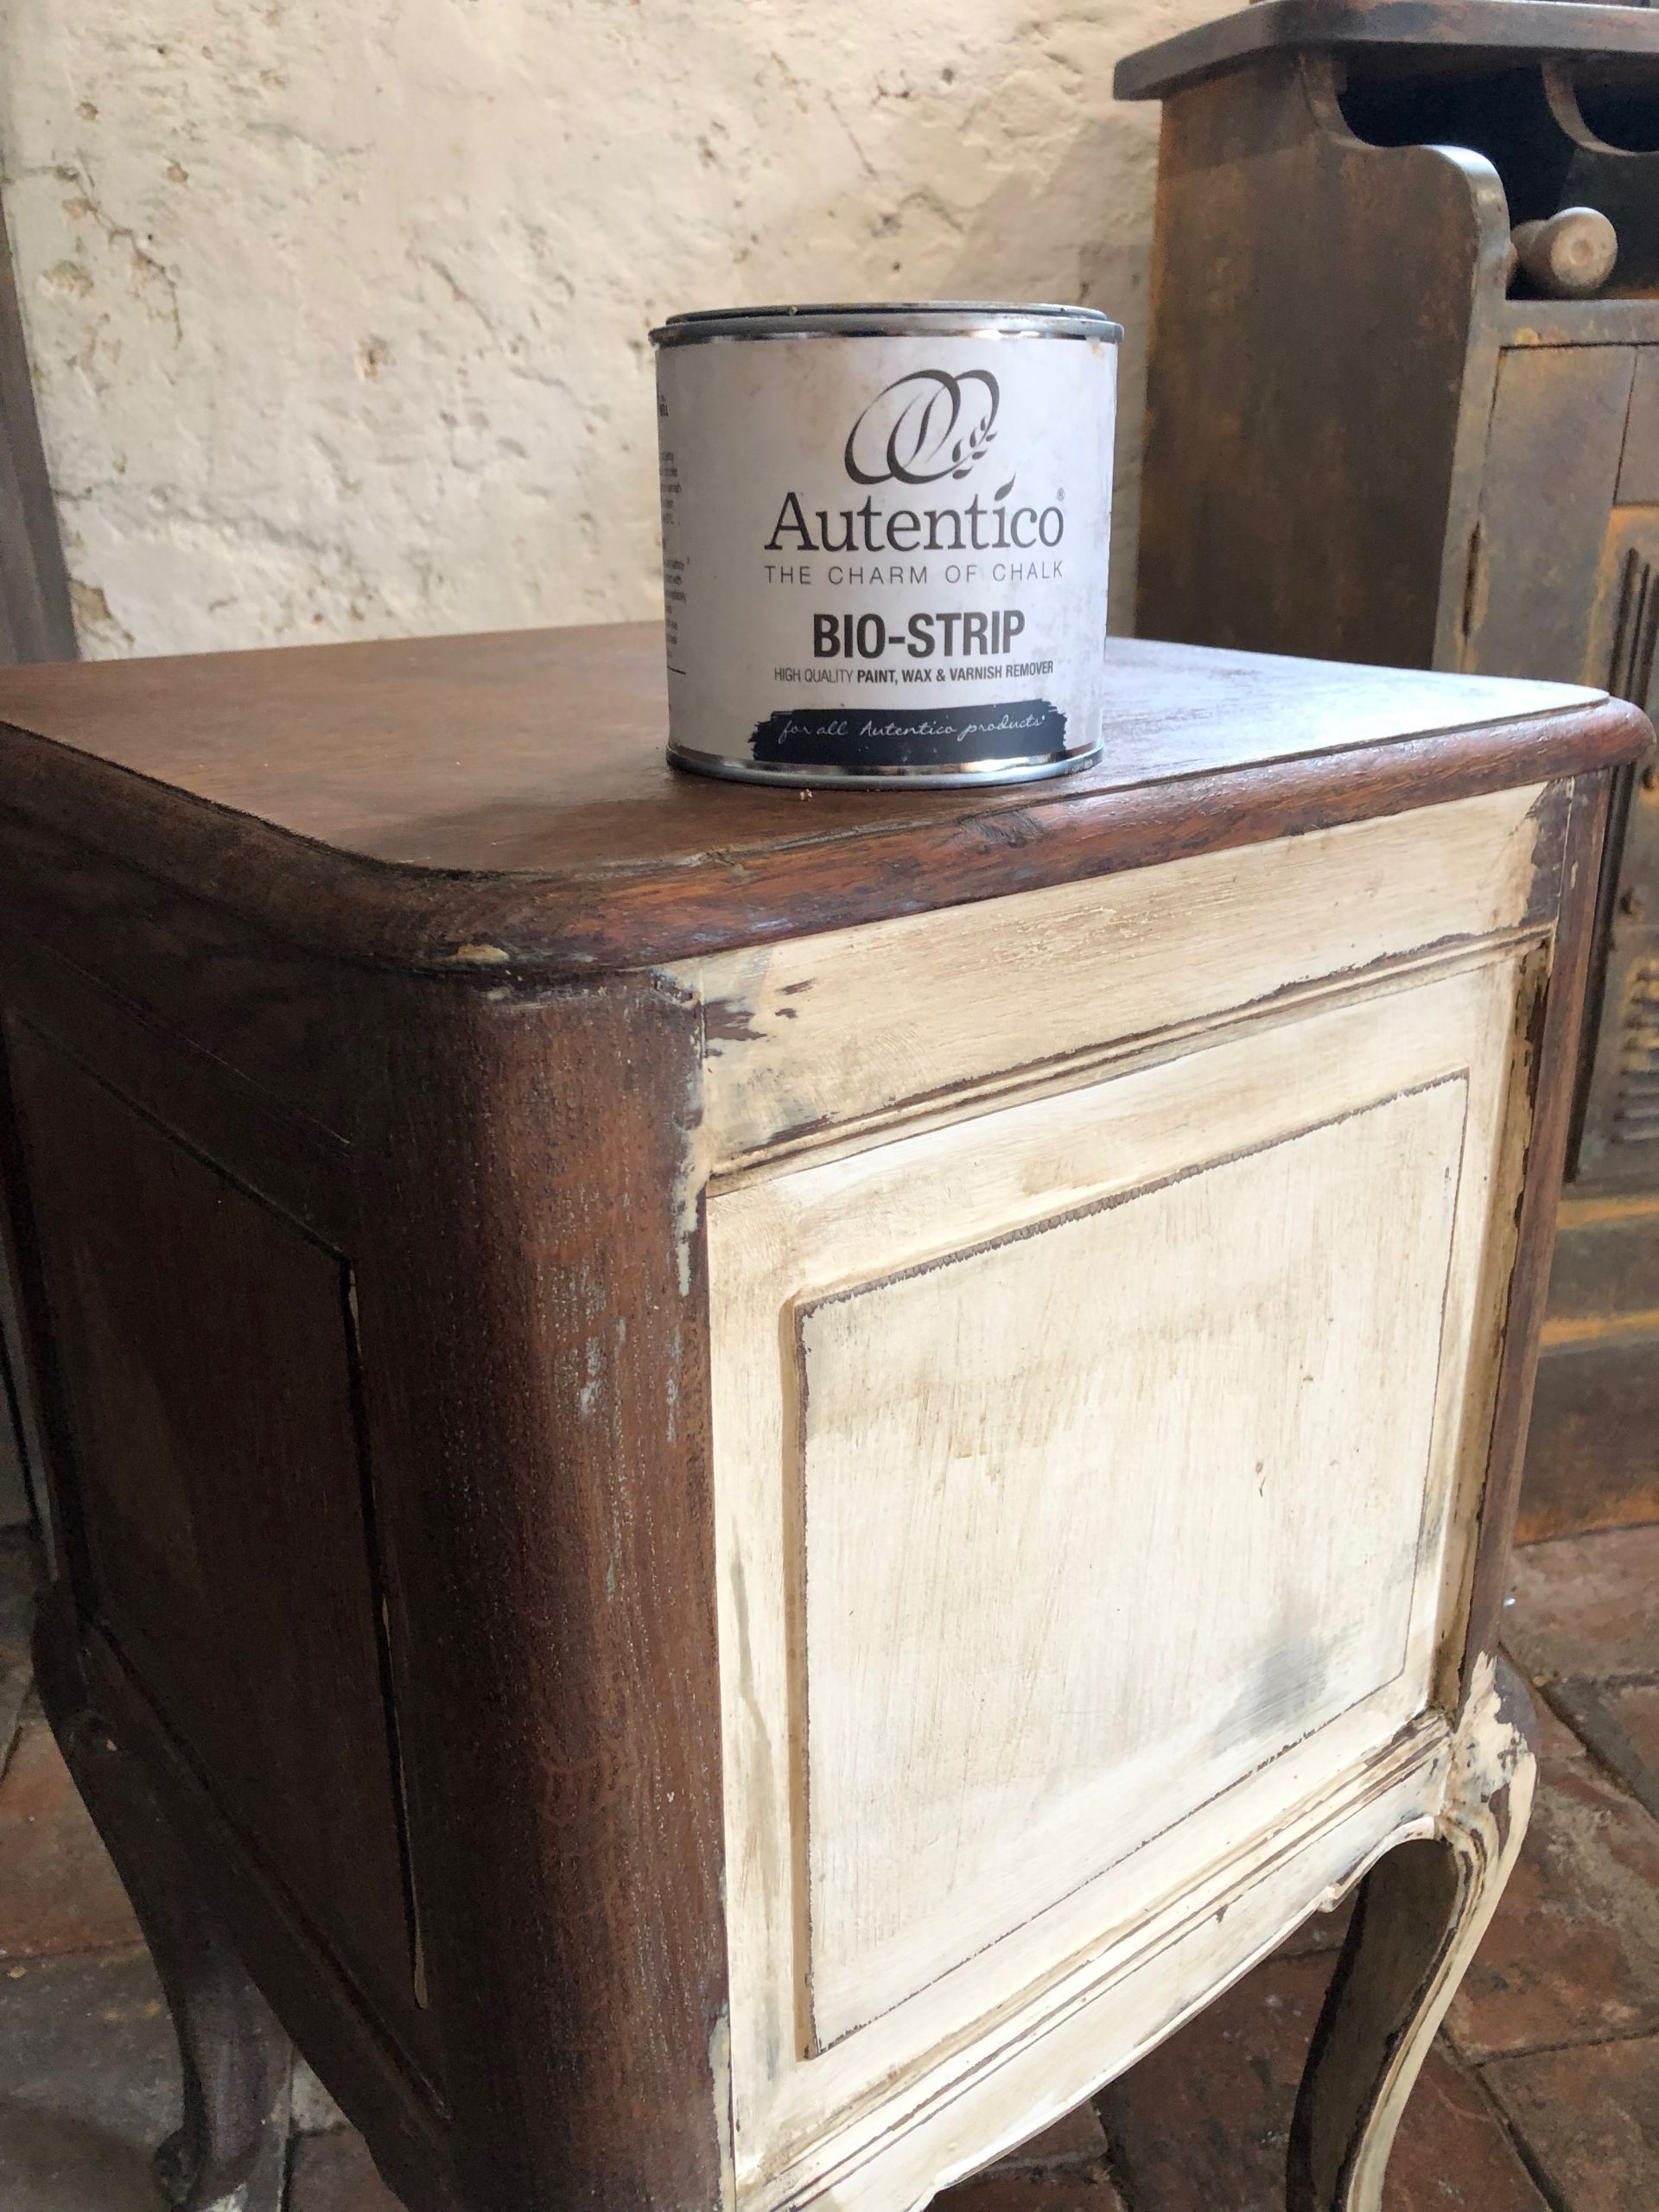 Back to raw wood with ease using Bio-Strip paint stripper